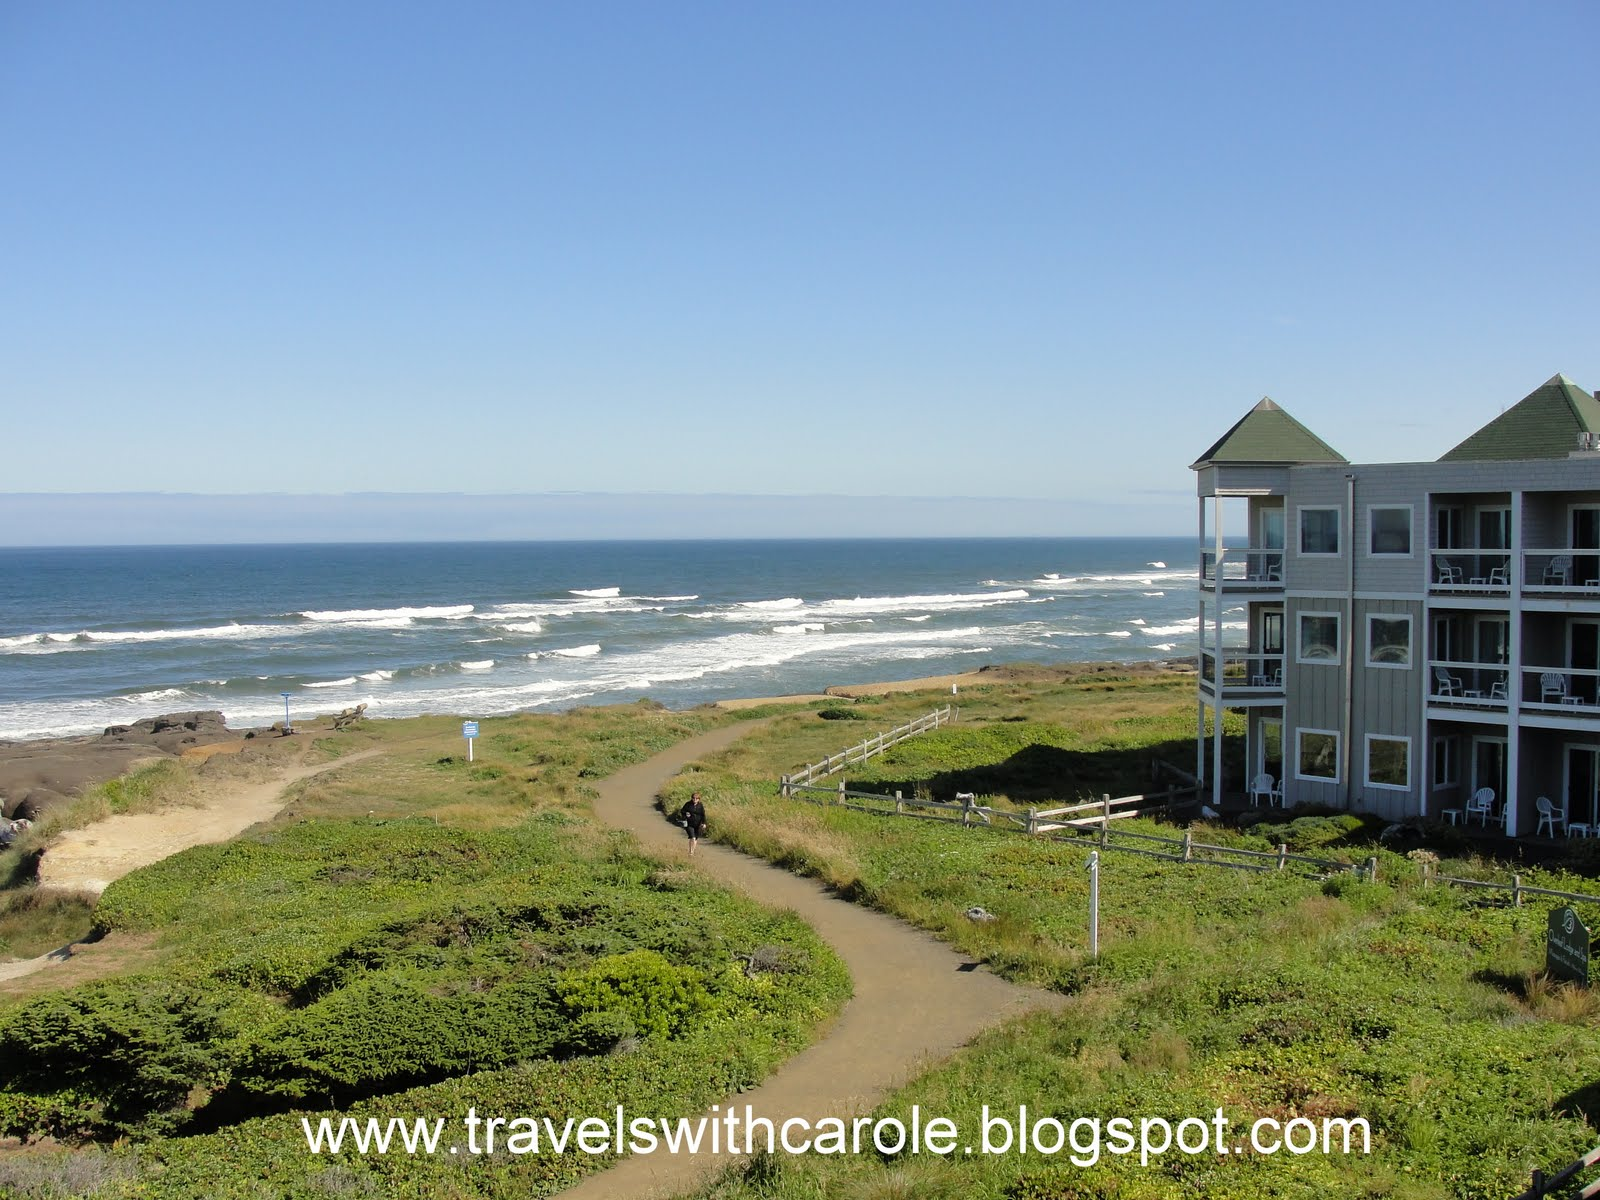 Travels With Carole: Great Sleeps: Overleaf Lodge & Spa, Yachats, Oregon